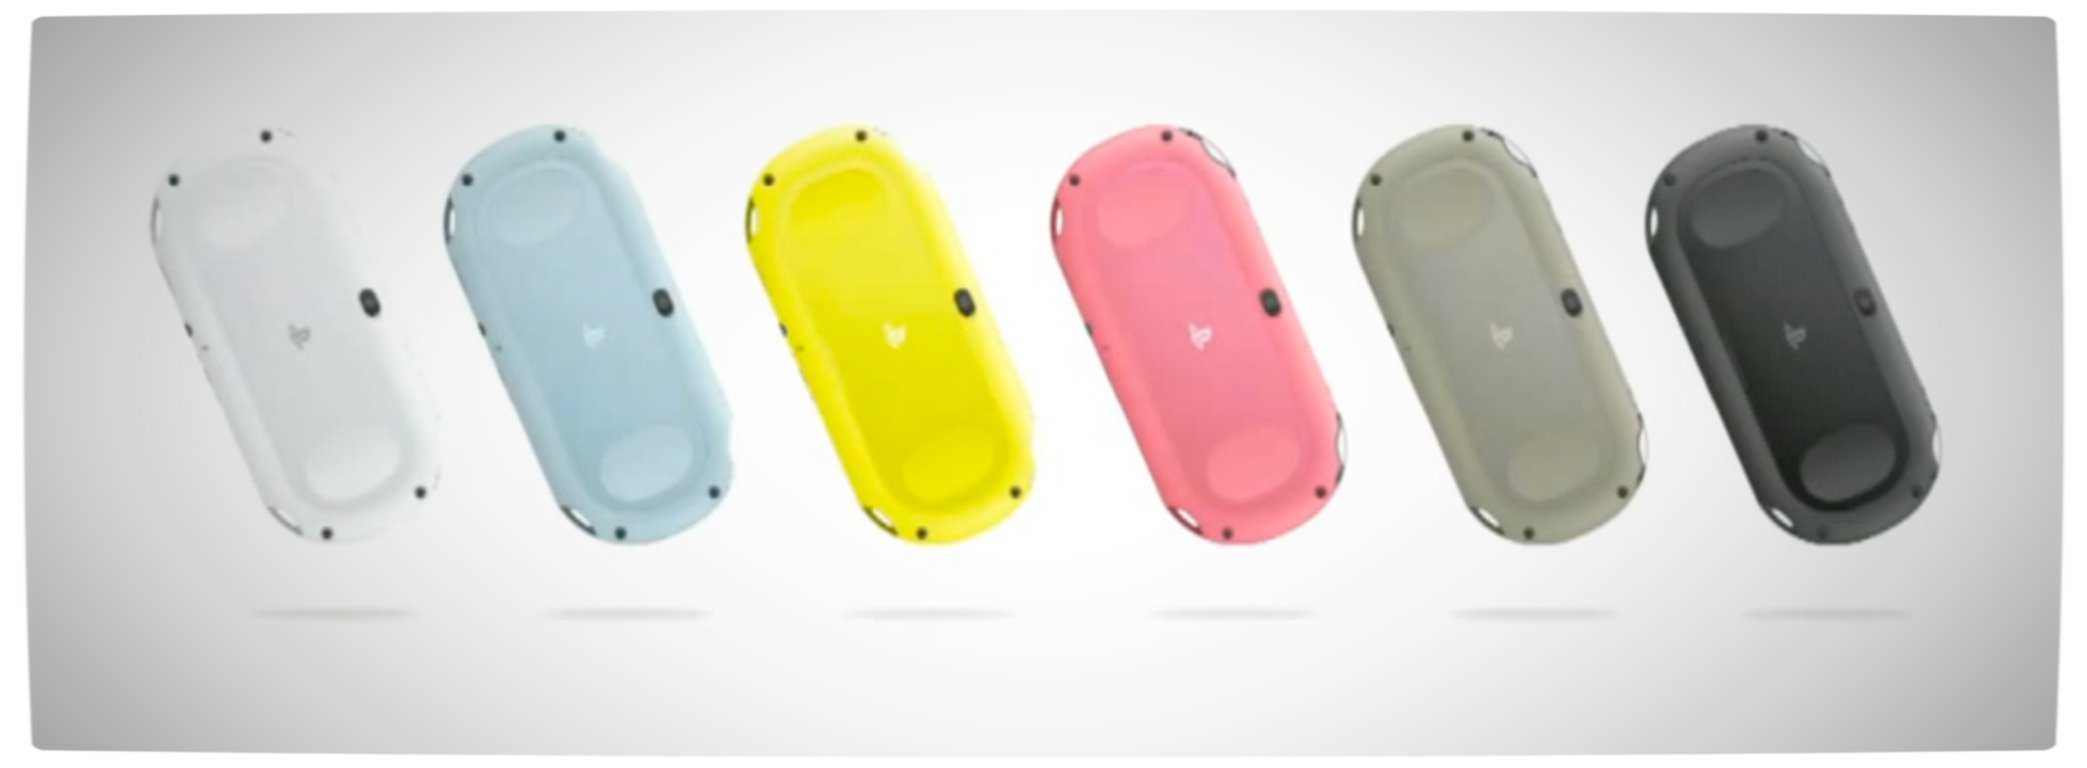 Vamers - FYI - Video Games - PS Vita 2000 Announced - Different Coloured Units